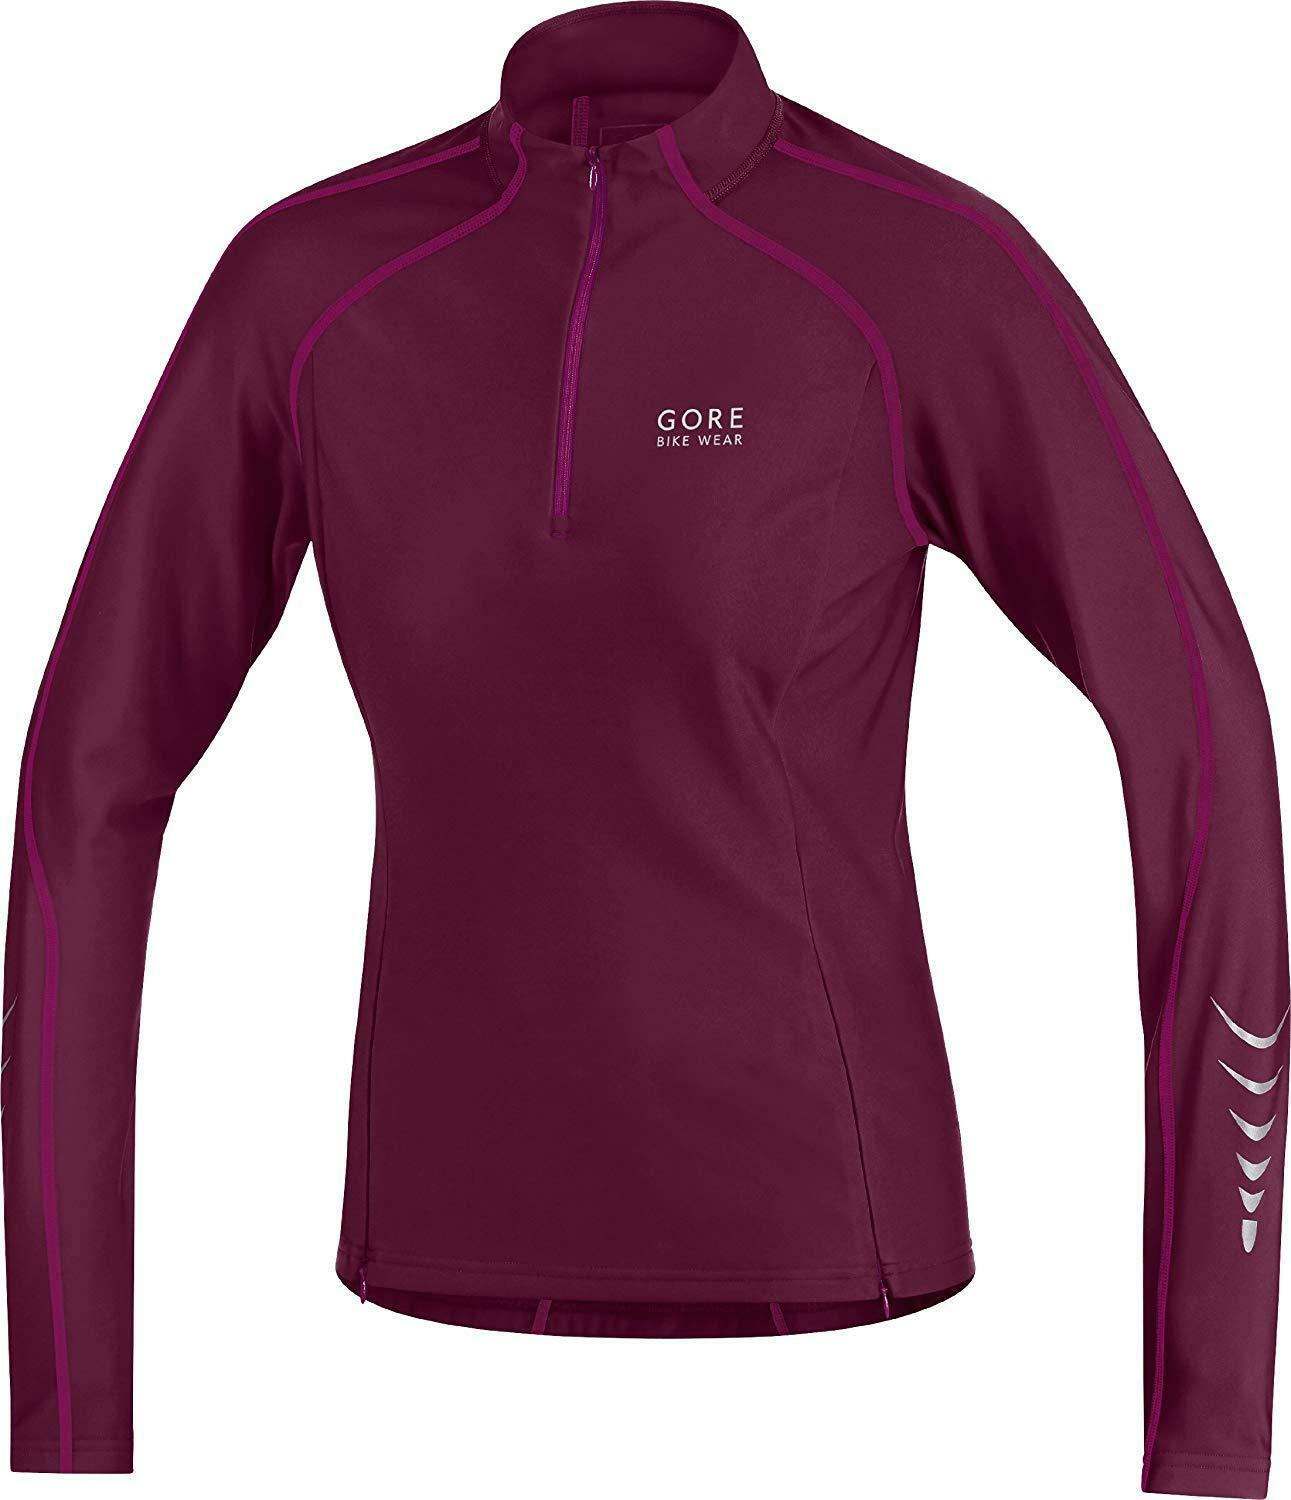 Gore Bike Wear Women's Contest Thermo Cycling Jersey shiraz red thai pink L 40